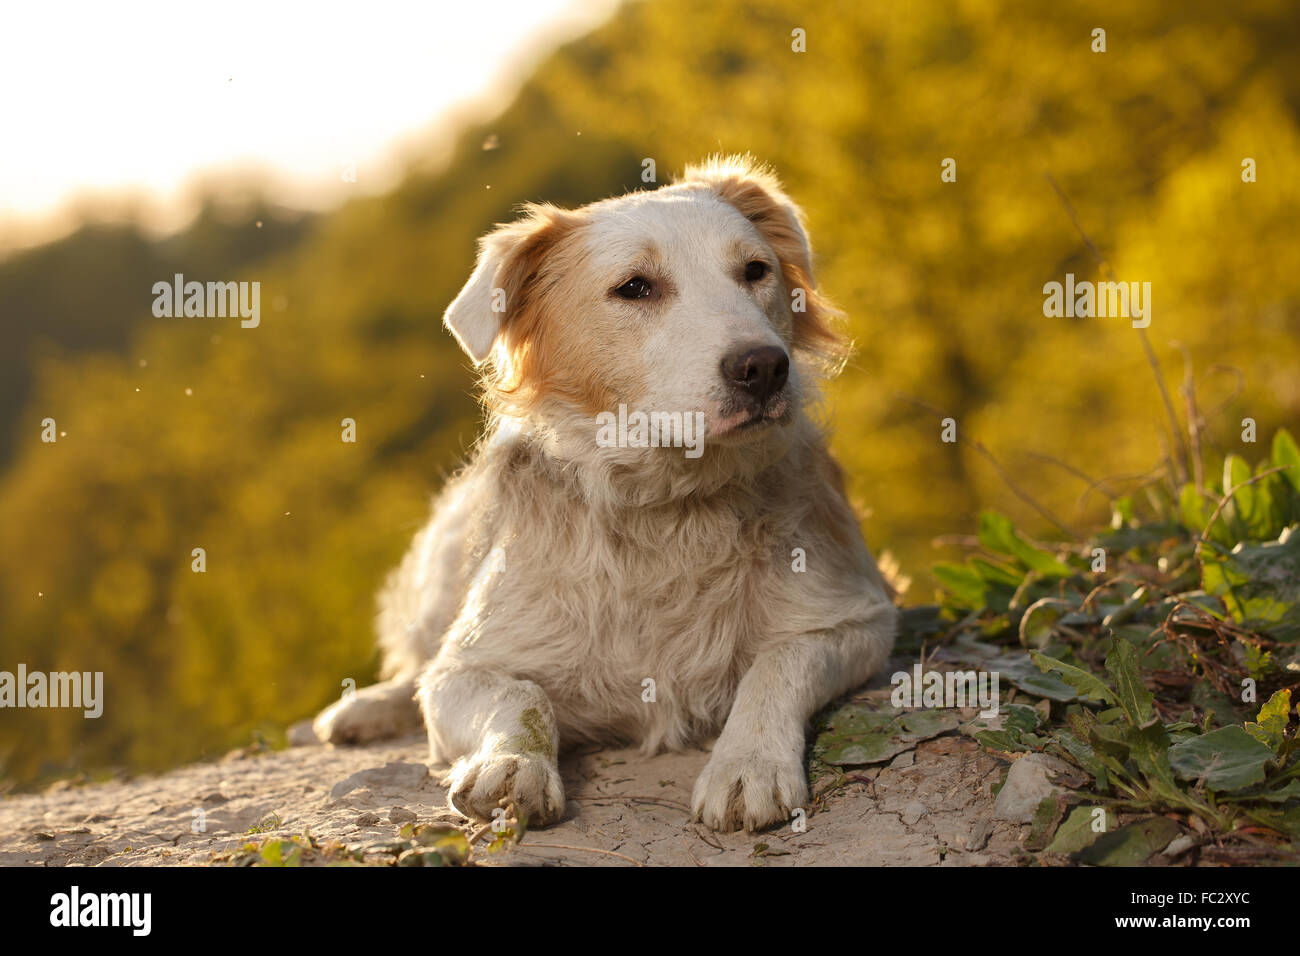 Pity Ginger Dog Outdoor on Green Background - Stock Image